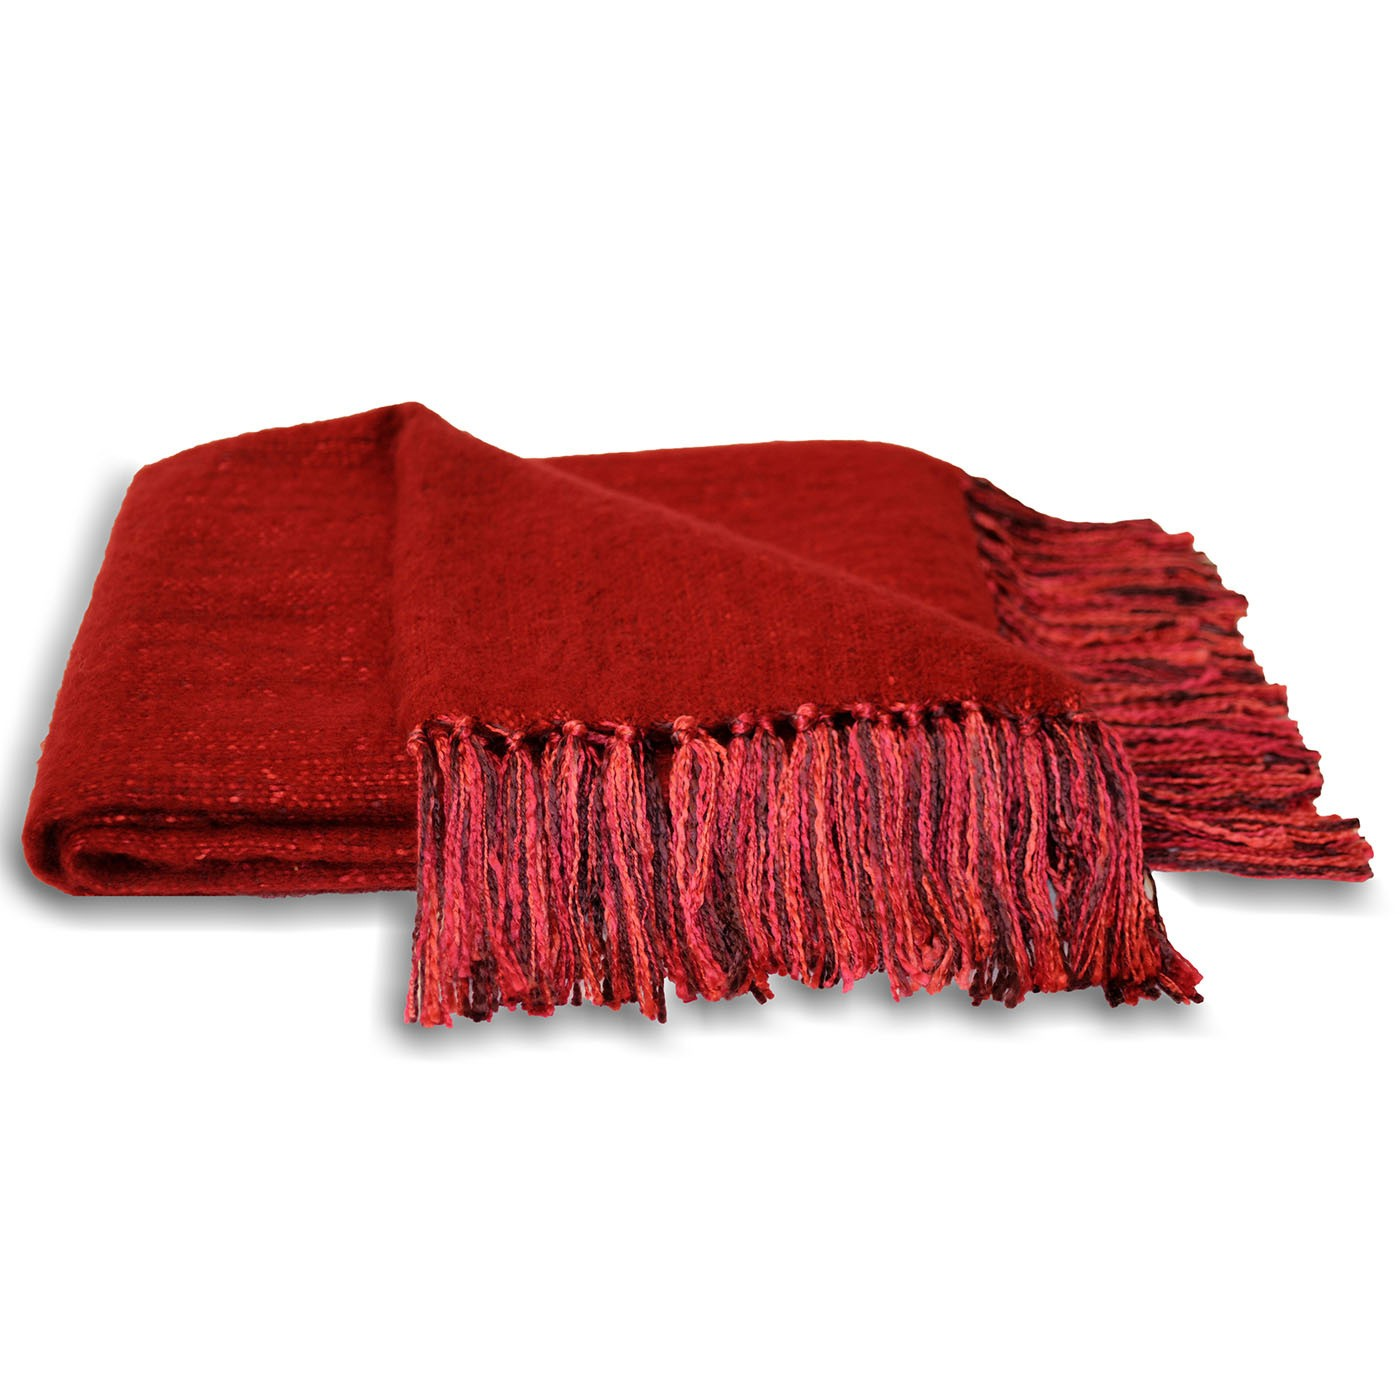 The Home Furnishings Company Red Chenille Style Throw 127x180 cms -  Ideal for sofas, chairs and beds